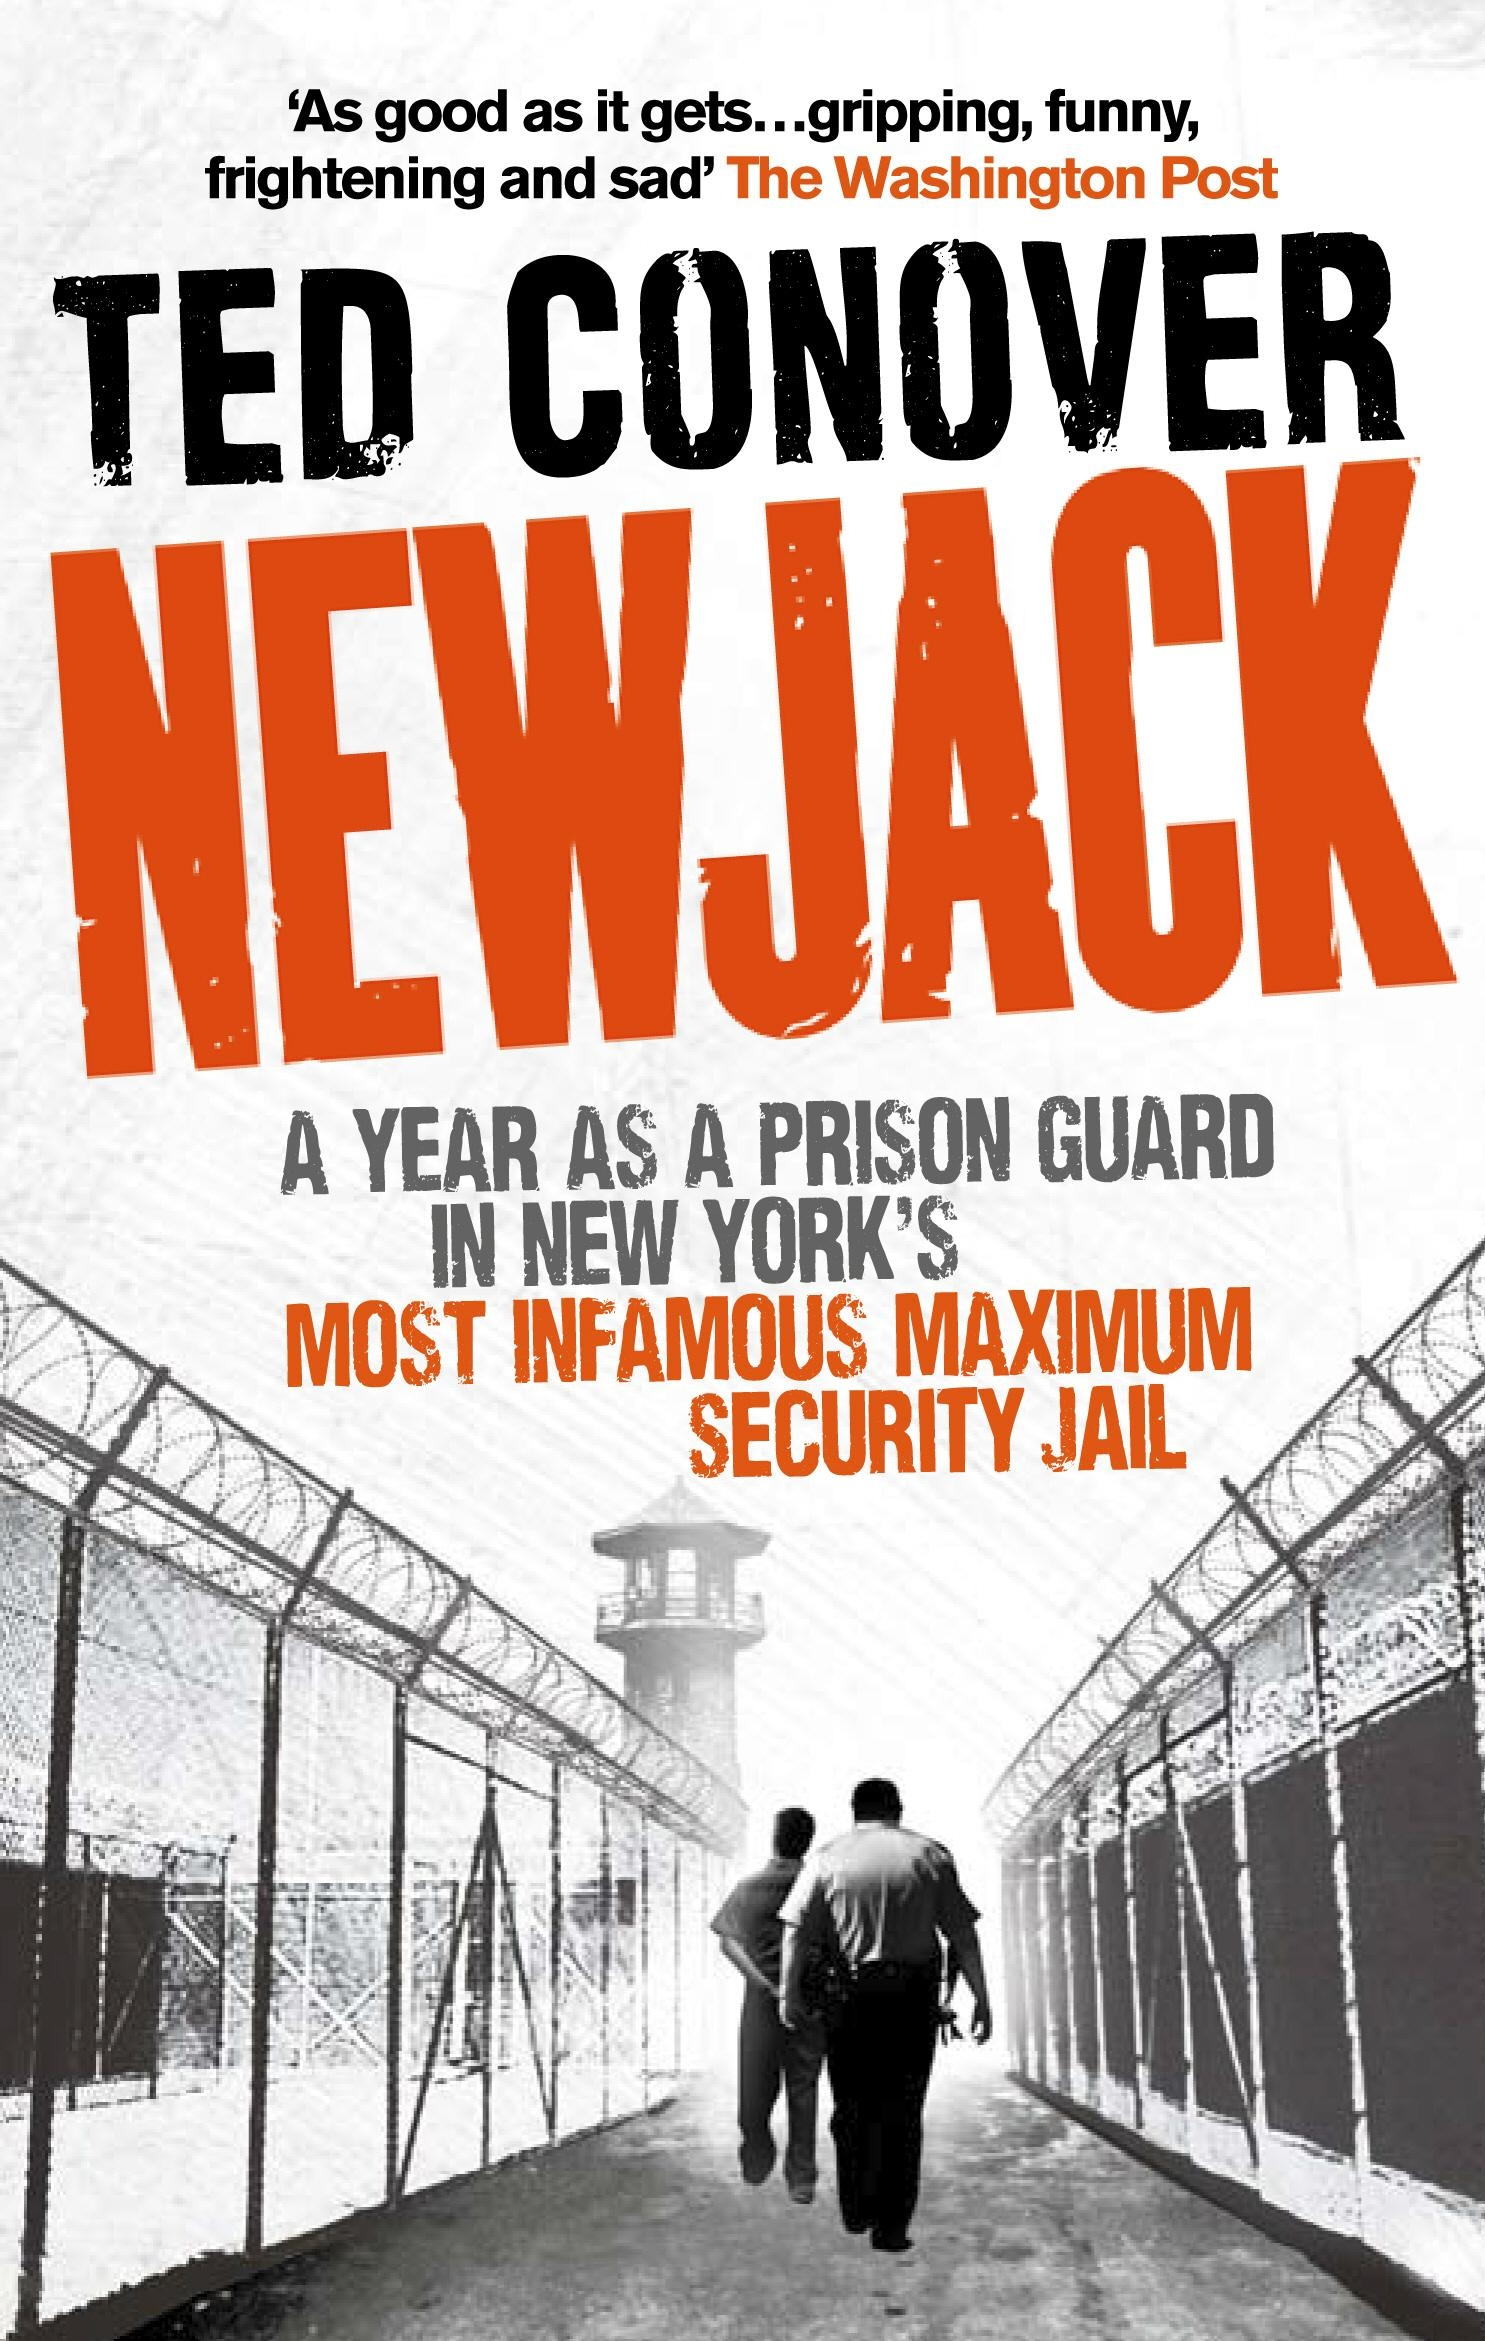 ted conover and the sing sing prison system Ted conover's foray into the world of corrections started as undercover expose of the sing sing prison system he soon discovered a world rarely seen by those outside of corrections.